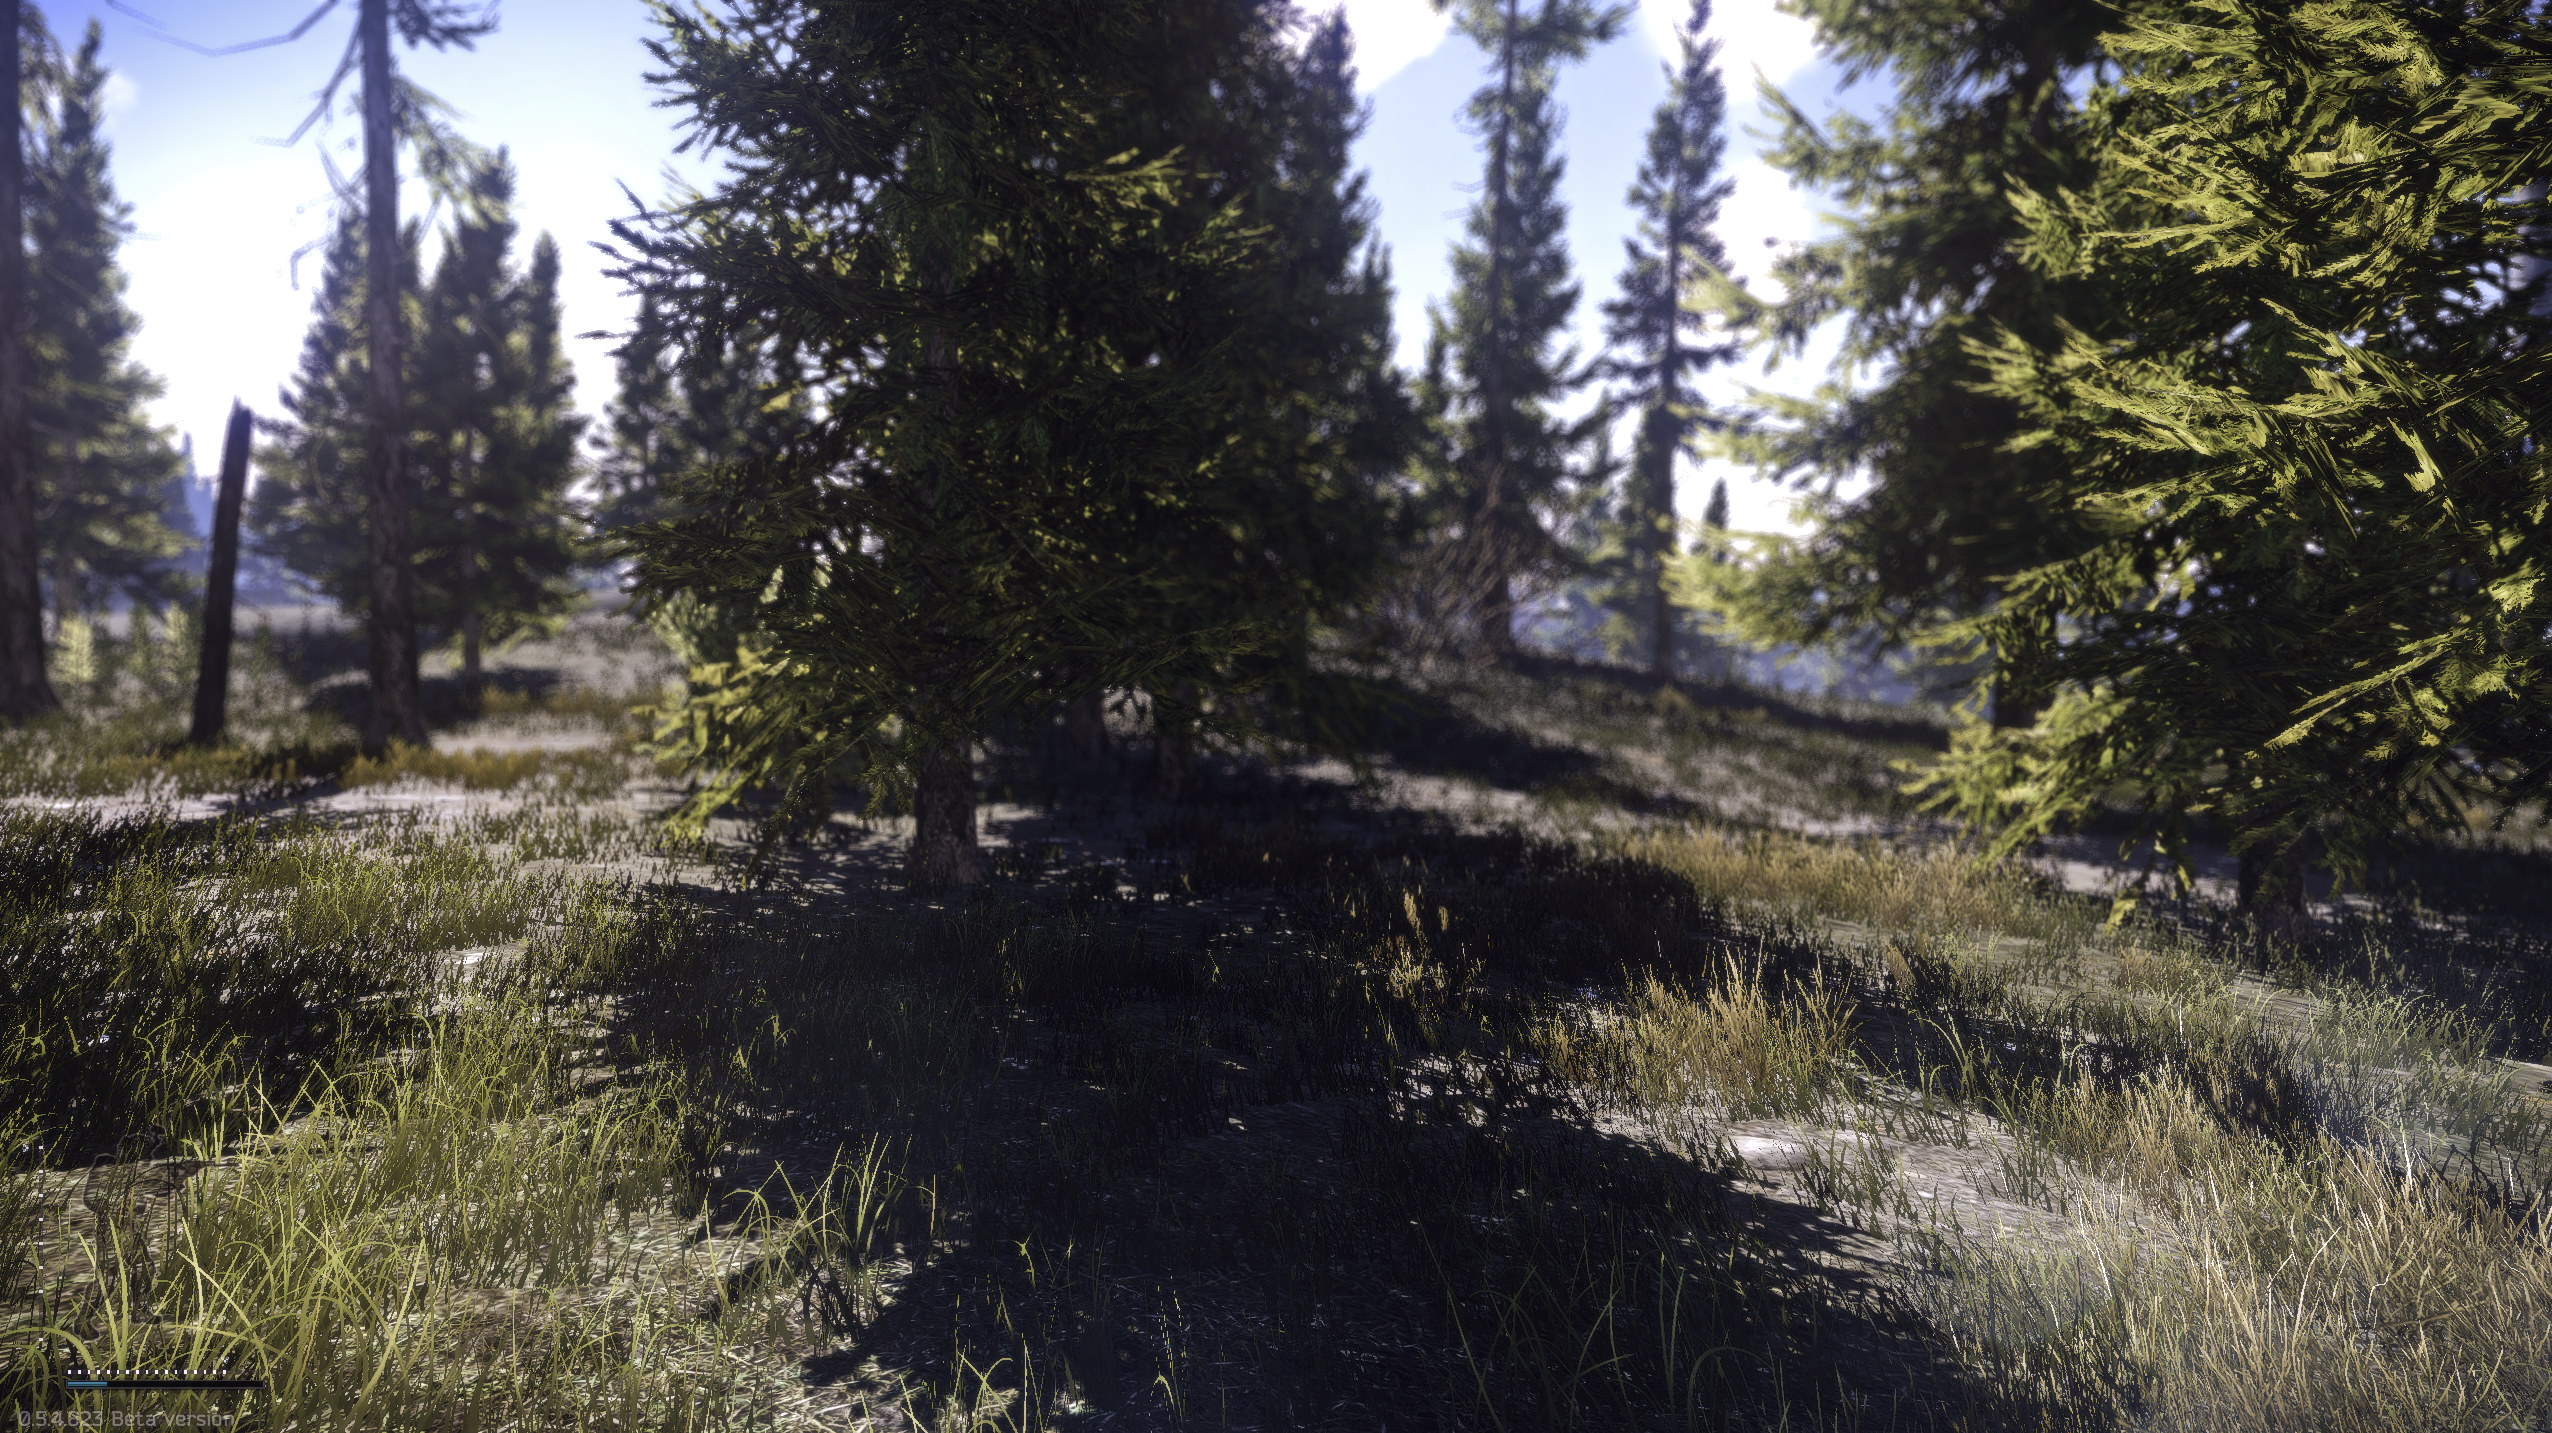 Reshade Escape from Tarkov - General game forum - Escape from Tarkov